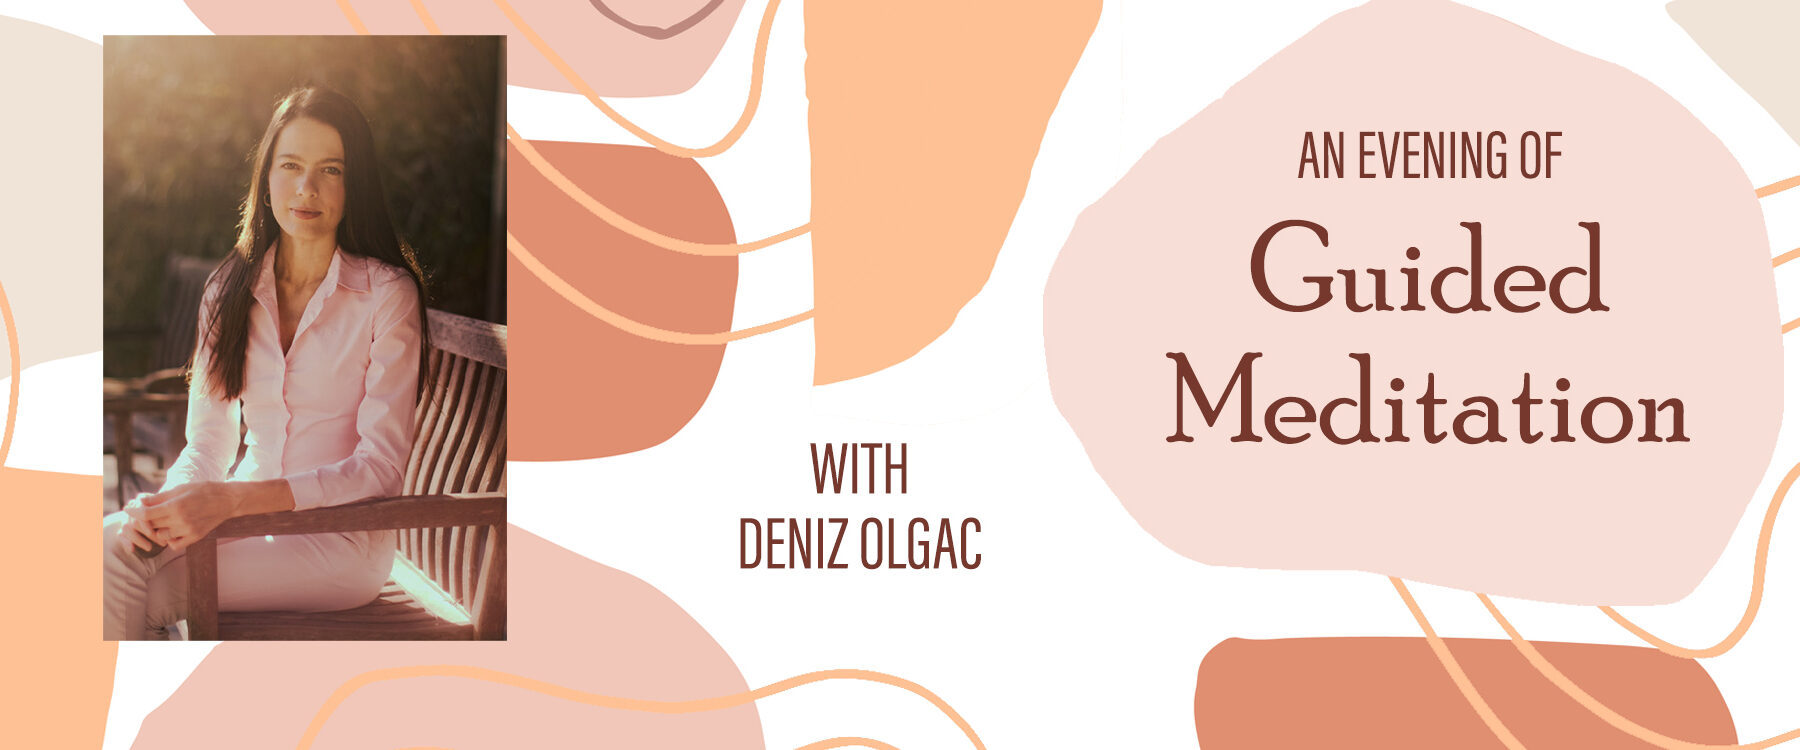 An evening of Guided Meditation with Deniz Olgac with portrait of Olgac on a colorful abstract background